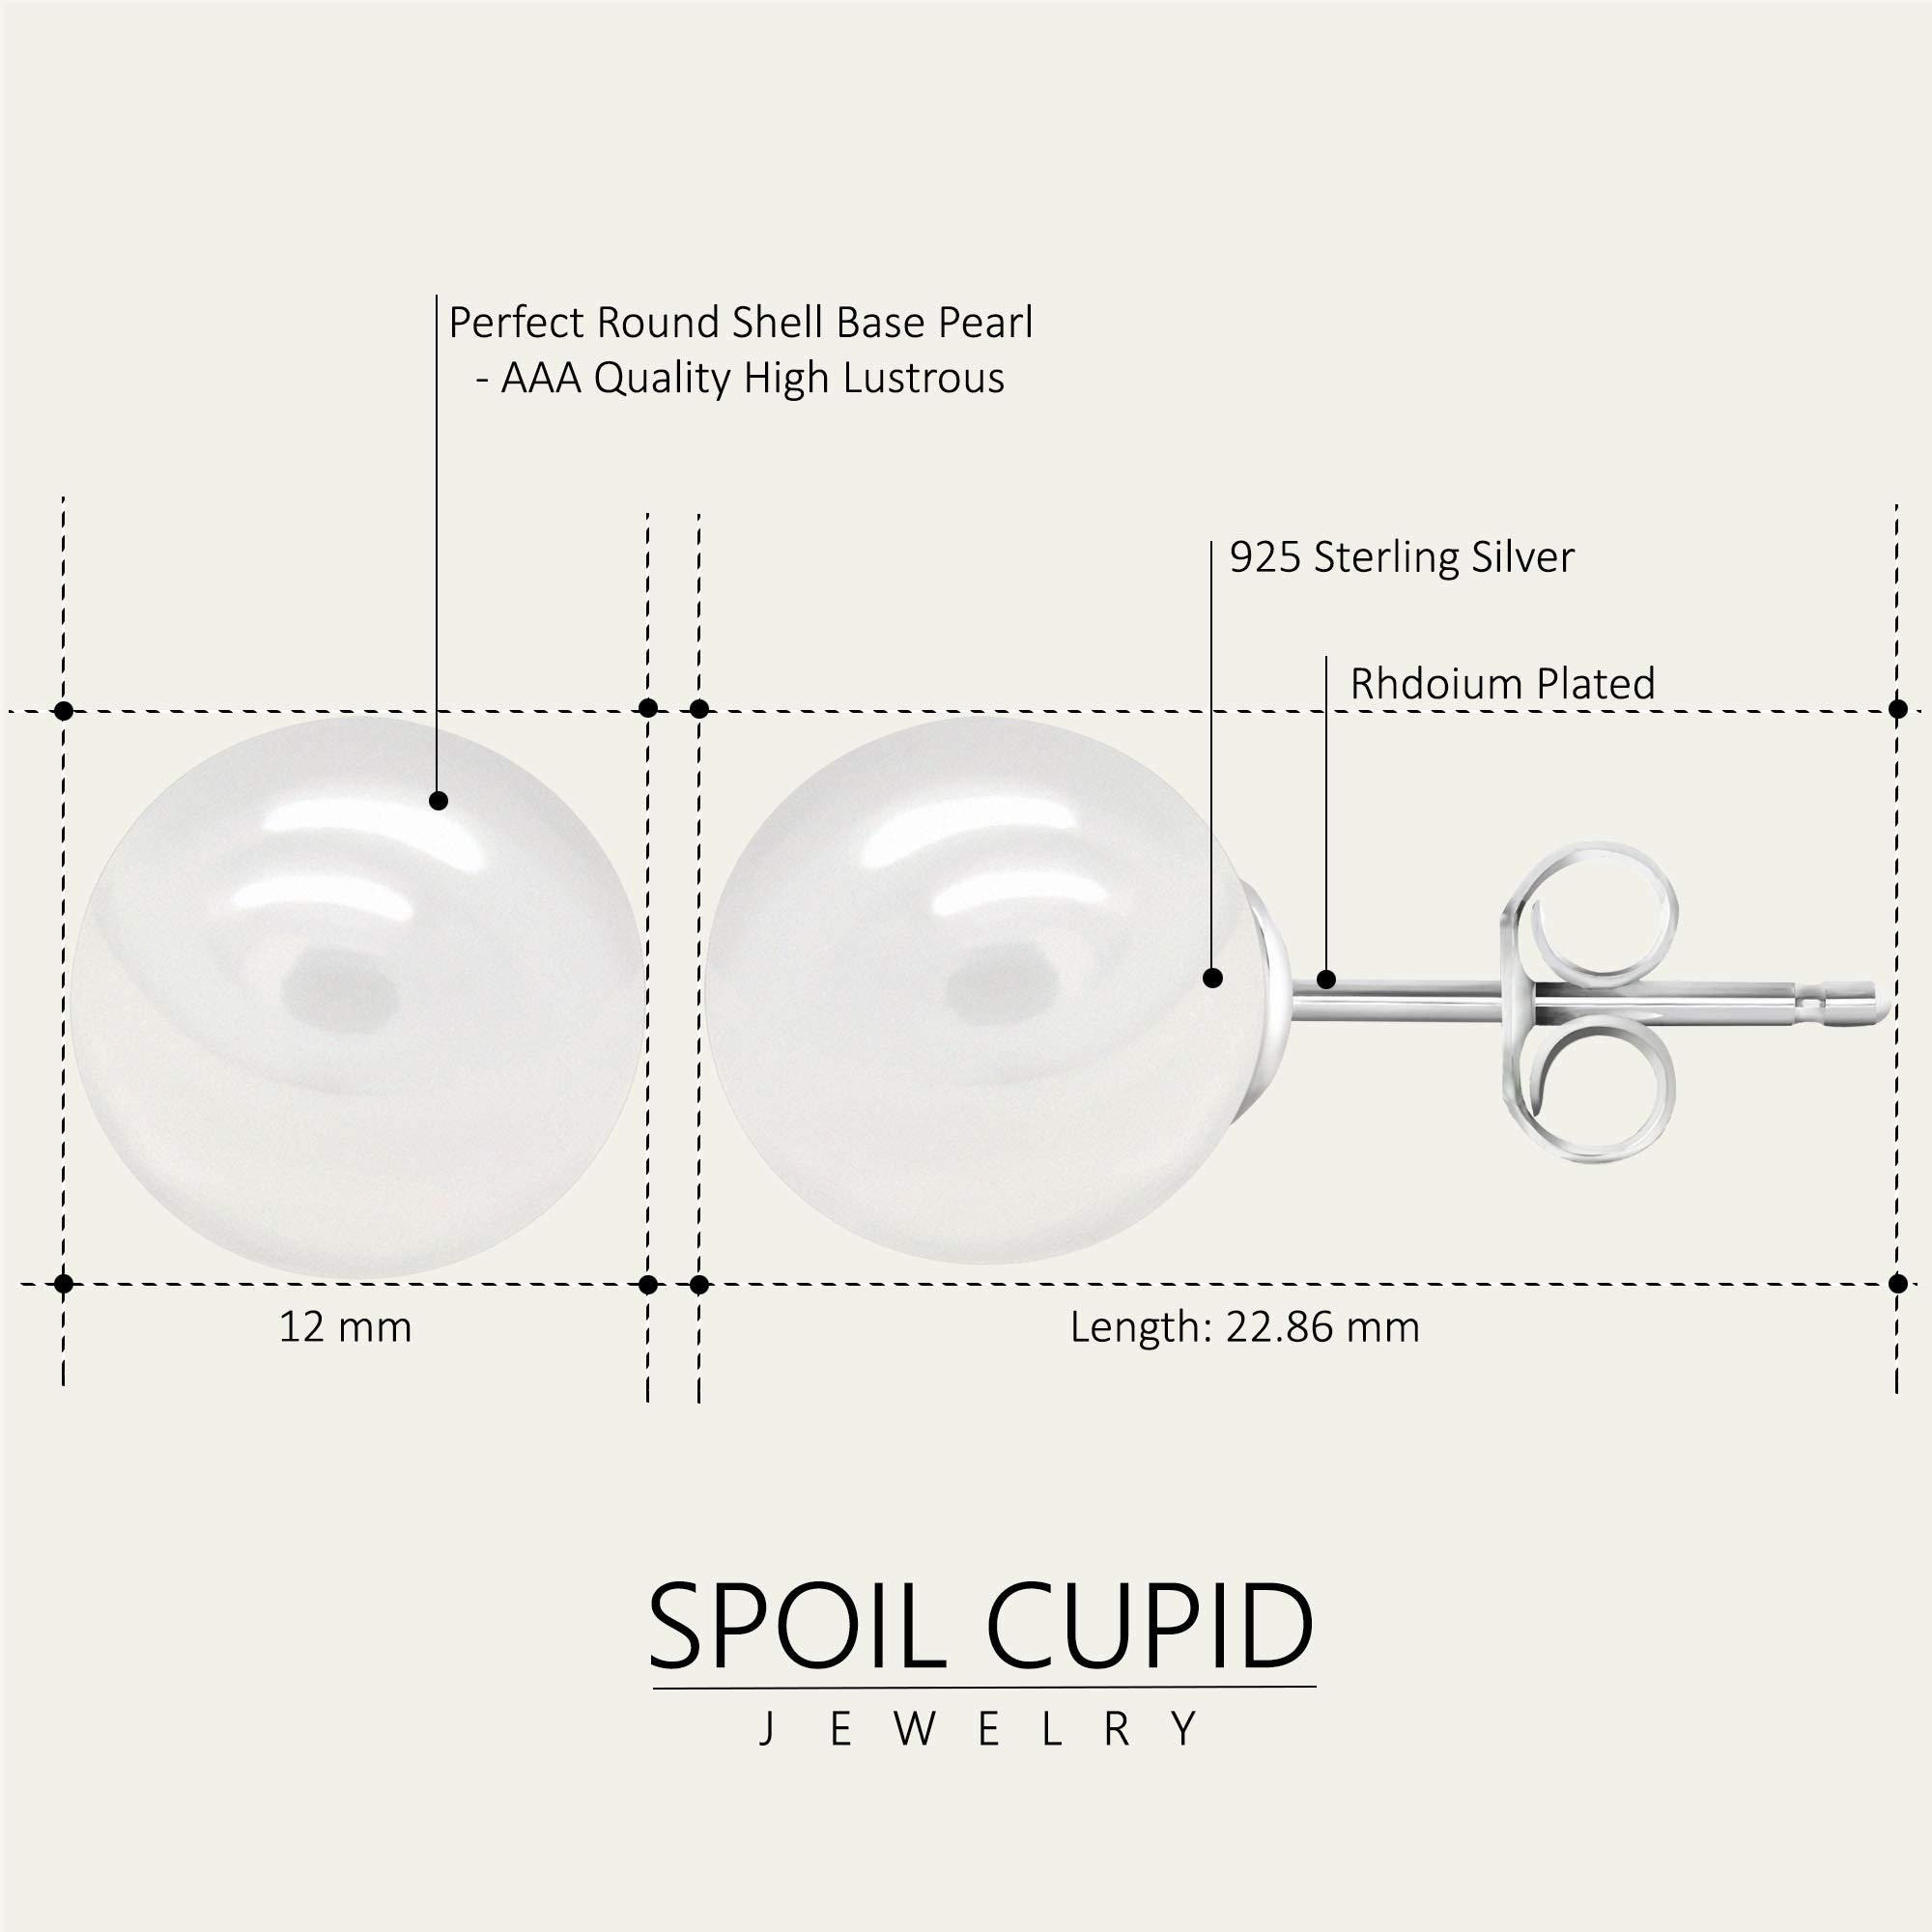 White Smooth Round Shell Base Imitation Pearl Rhodium-Plated 925 Sterling Silver Stud Earrings, 12mm